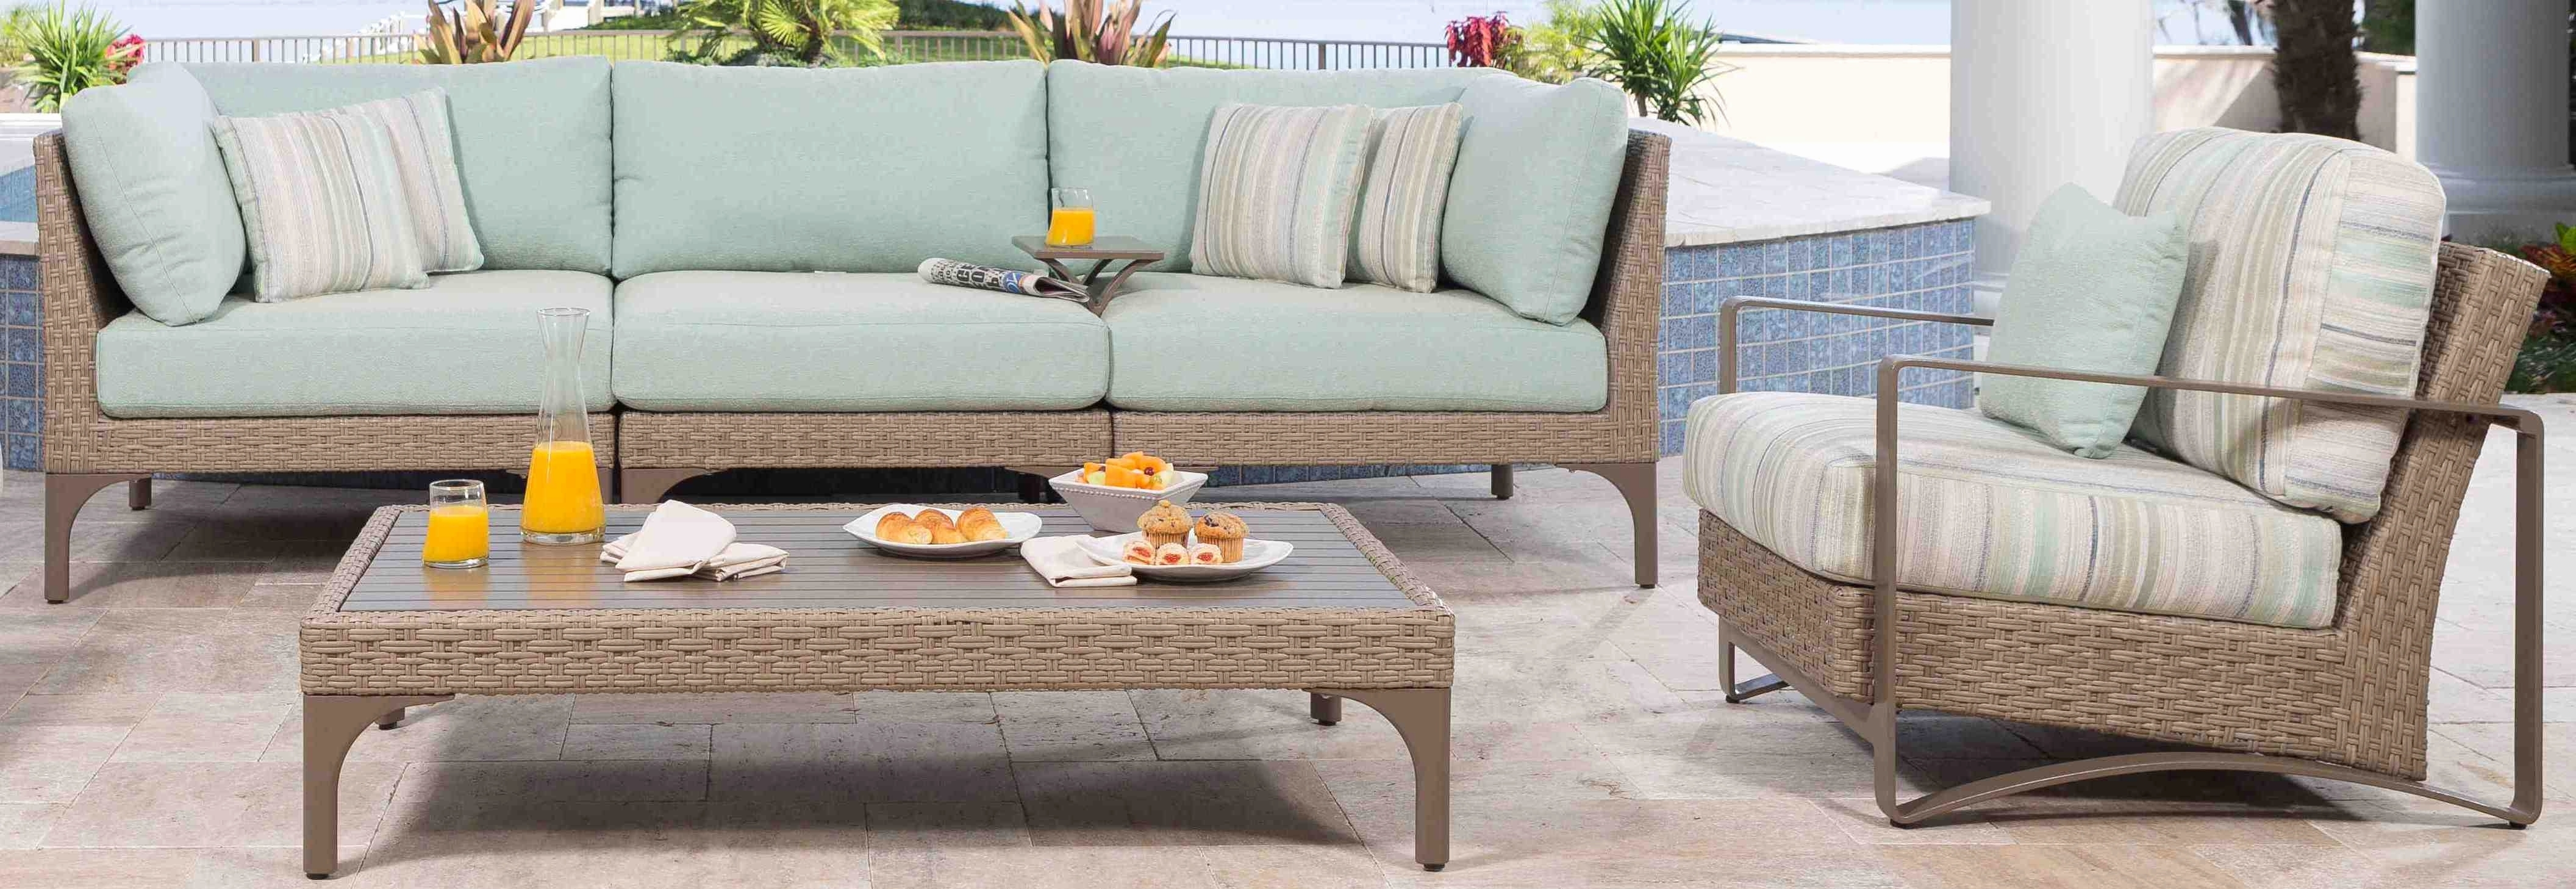 Newest Nfm Patio Conversation Sets In Ebel Patio Furniture (View 11 of 20)